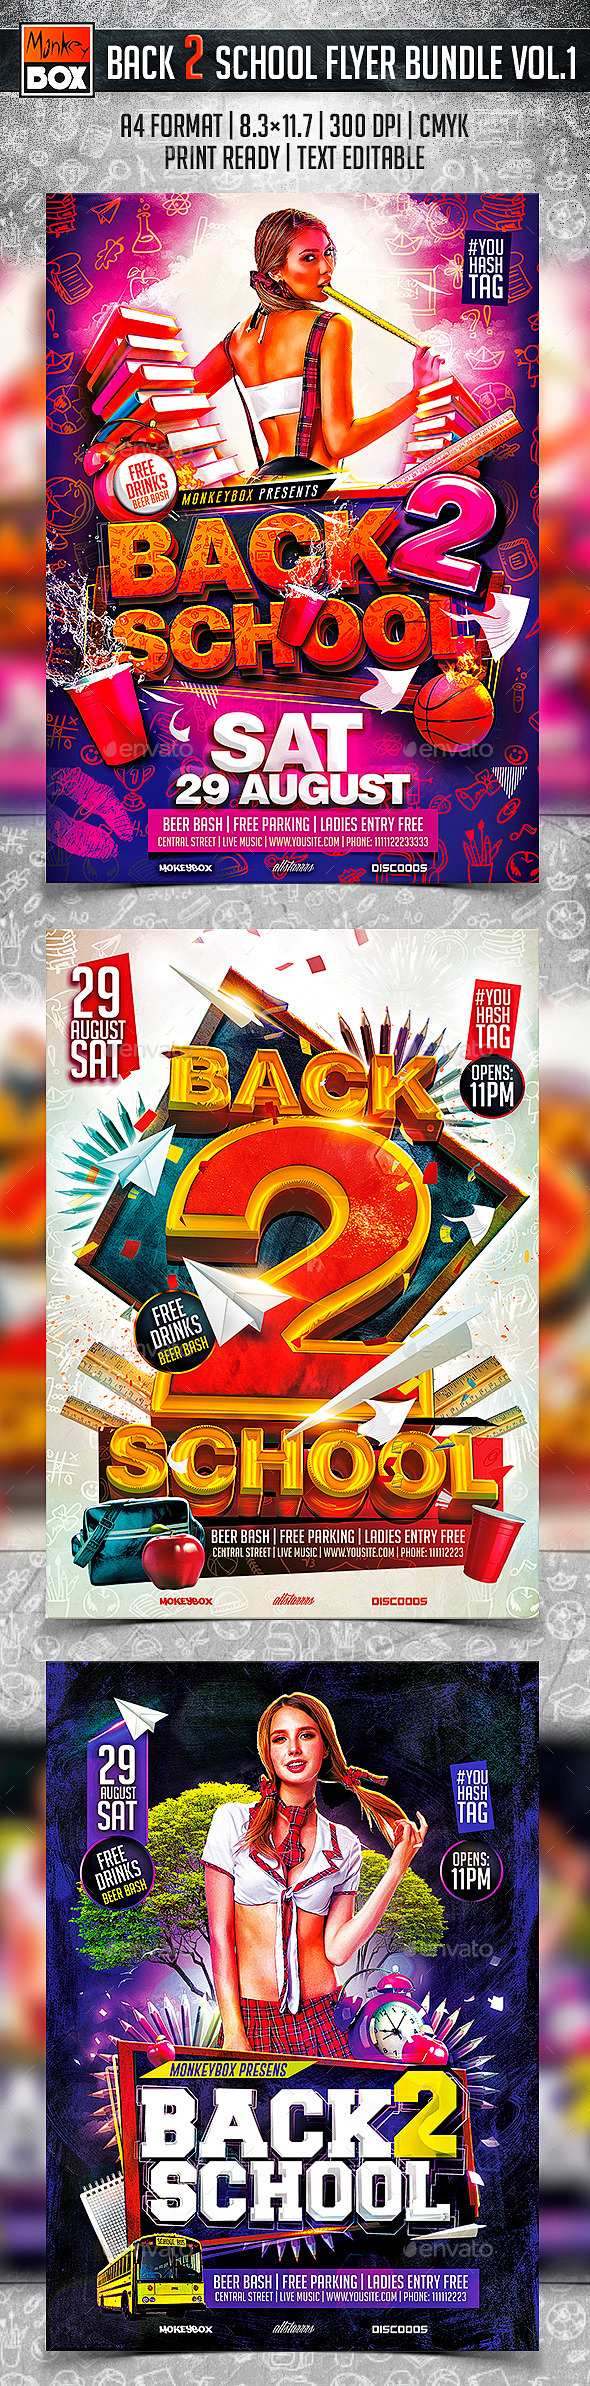 Back 2 School Flyer Bundle Vol.1 - Events Flyers